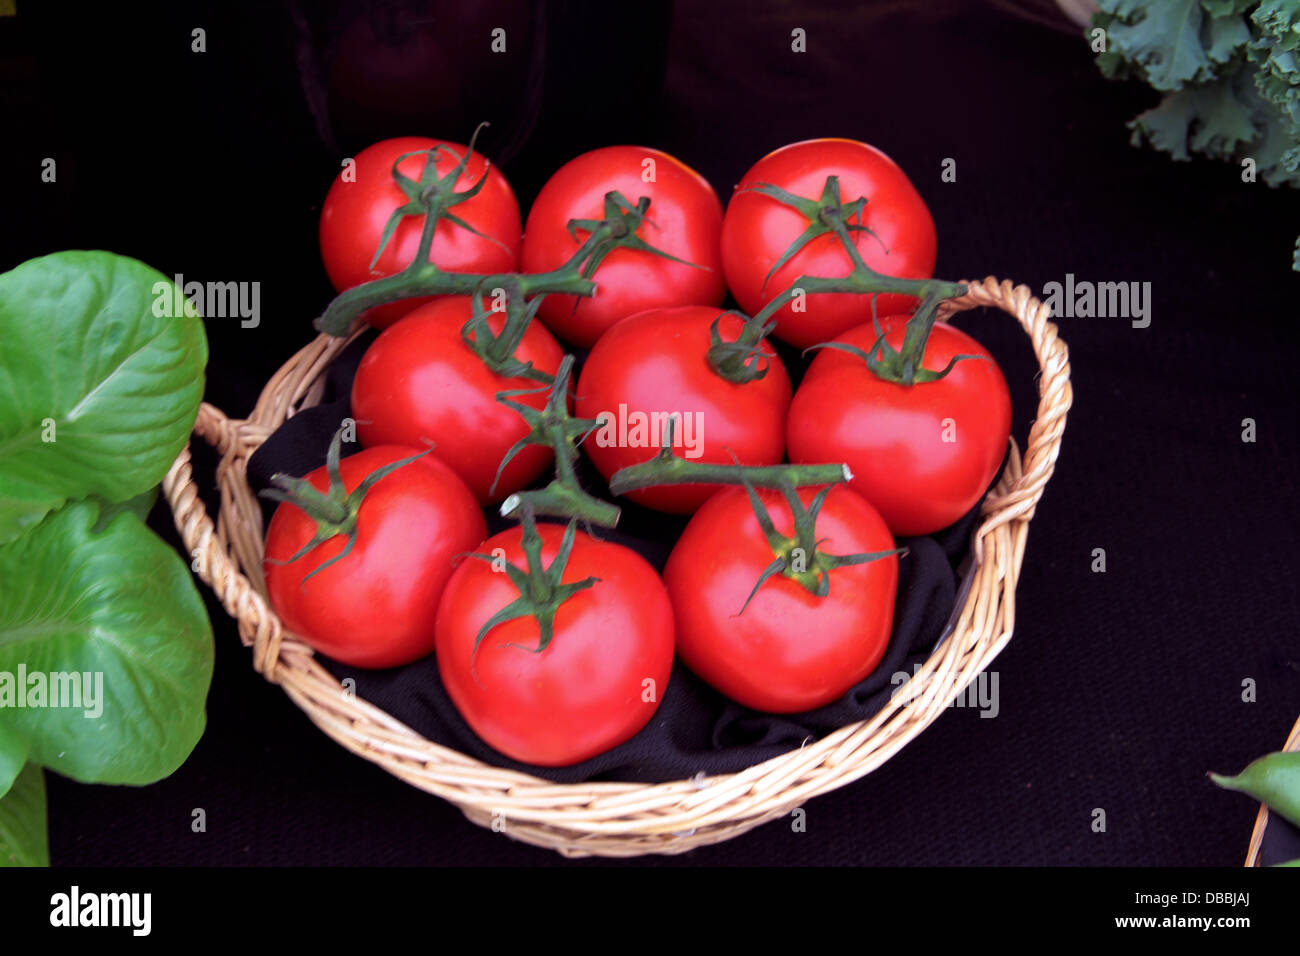 A basket of nine bright red tomatoes - Stock Image